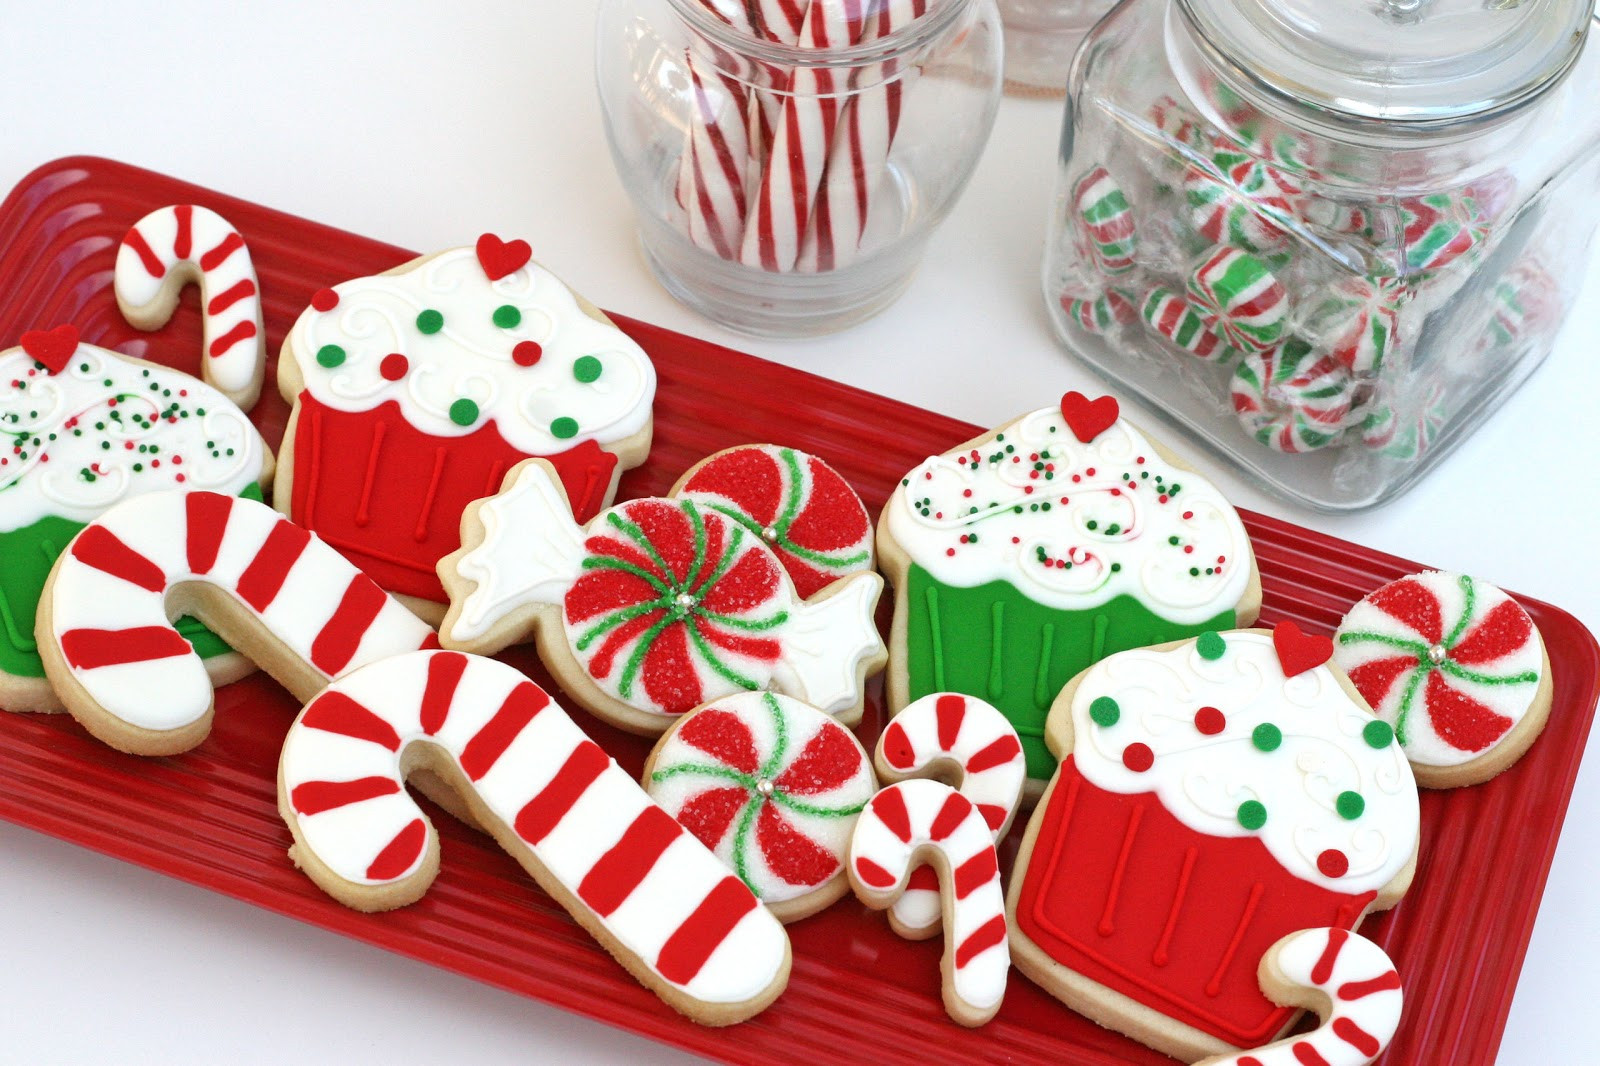 Christmas Candy And Cookie Recipe  Christmas Cookies Galore Glorious Treats